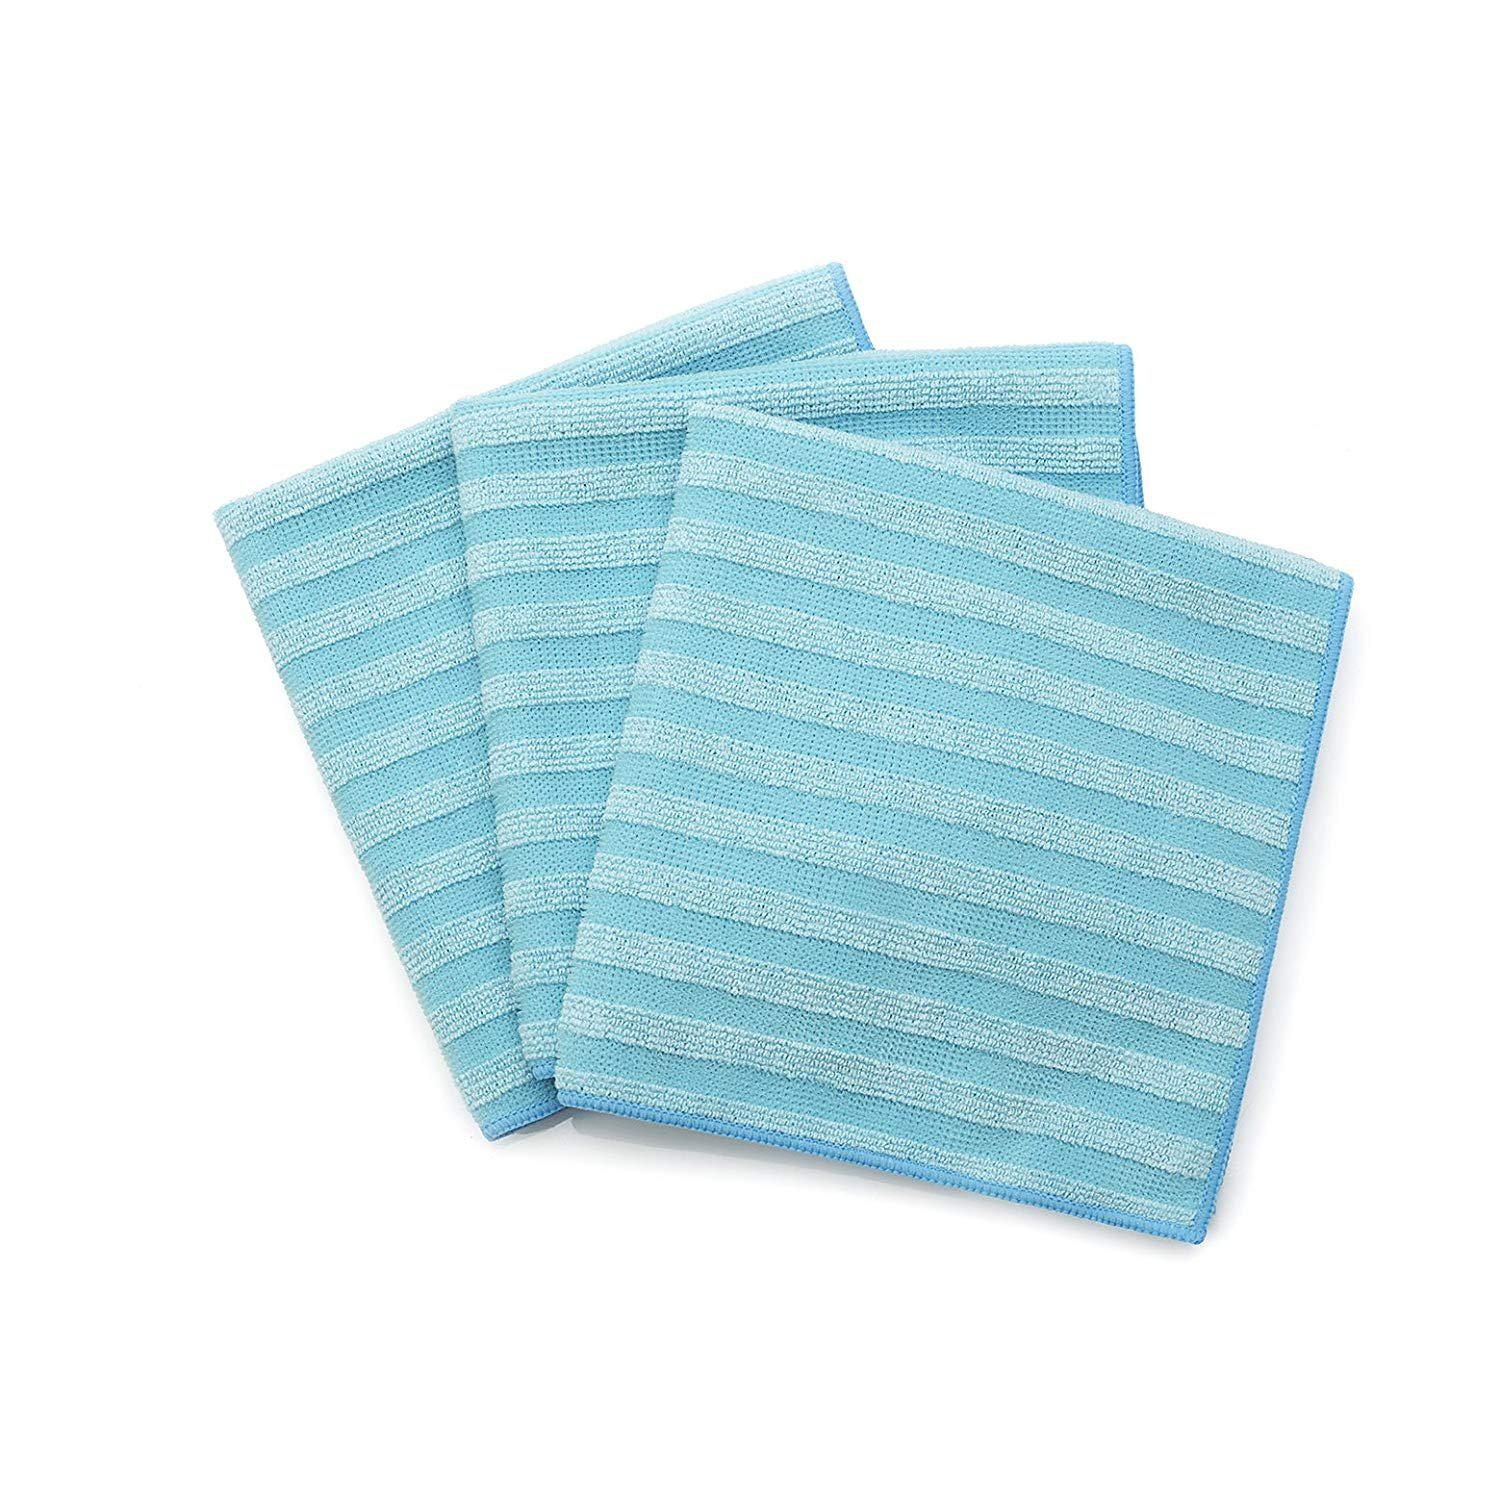 Dual Action Microfiber Cleaning Cloths (Pack of 3)-Other Cleaning Supplies-Fuller Brush Company